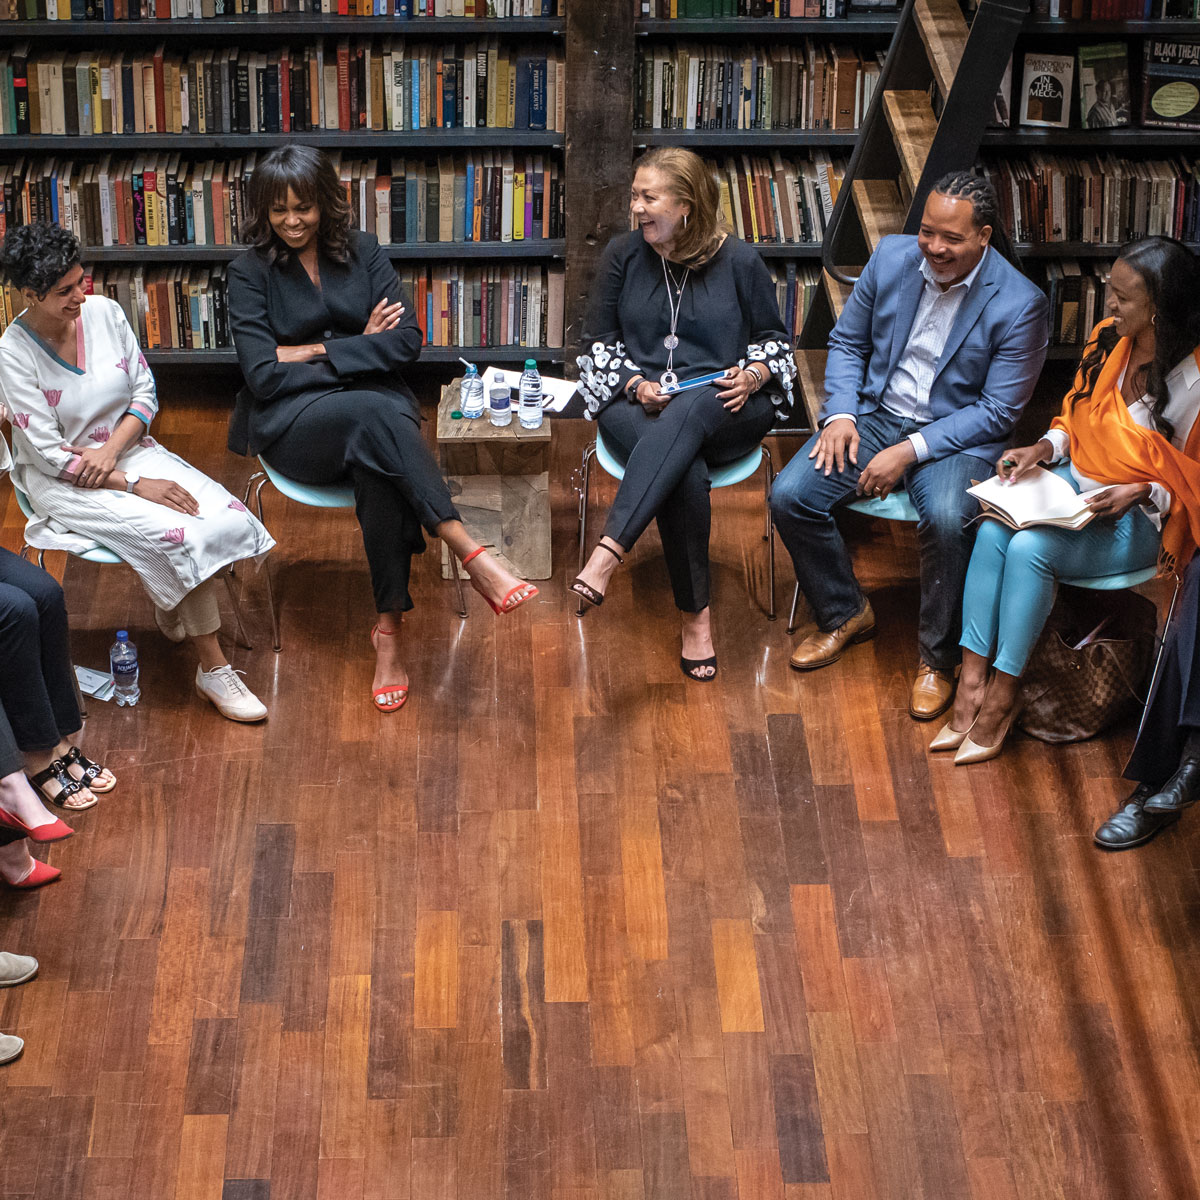 Mrs. Obama speaks with the 2018 Obama Foundation Fellows at their first gathering.